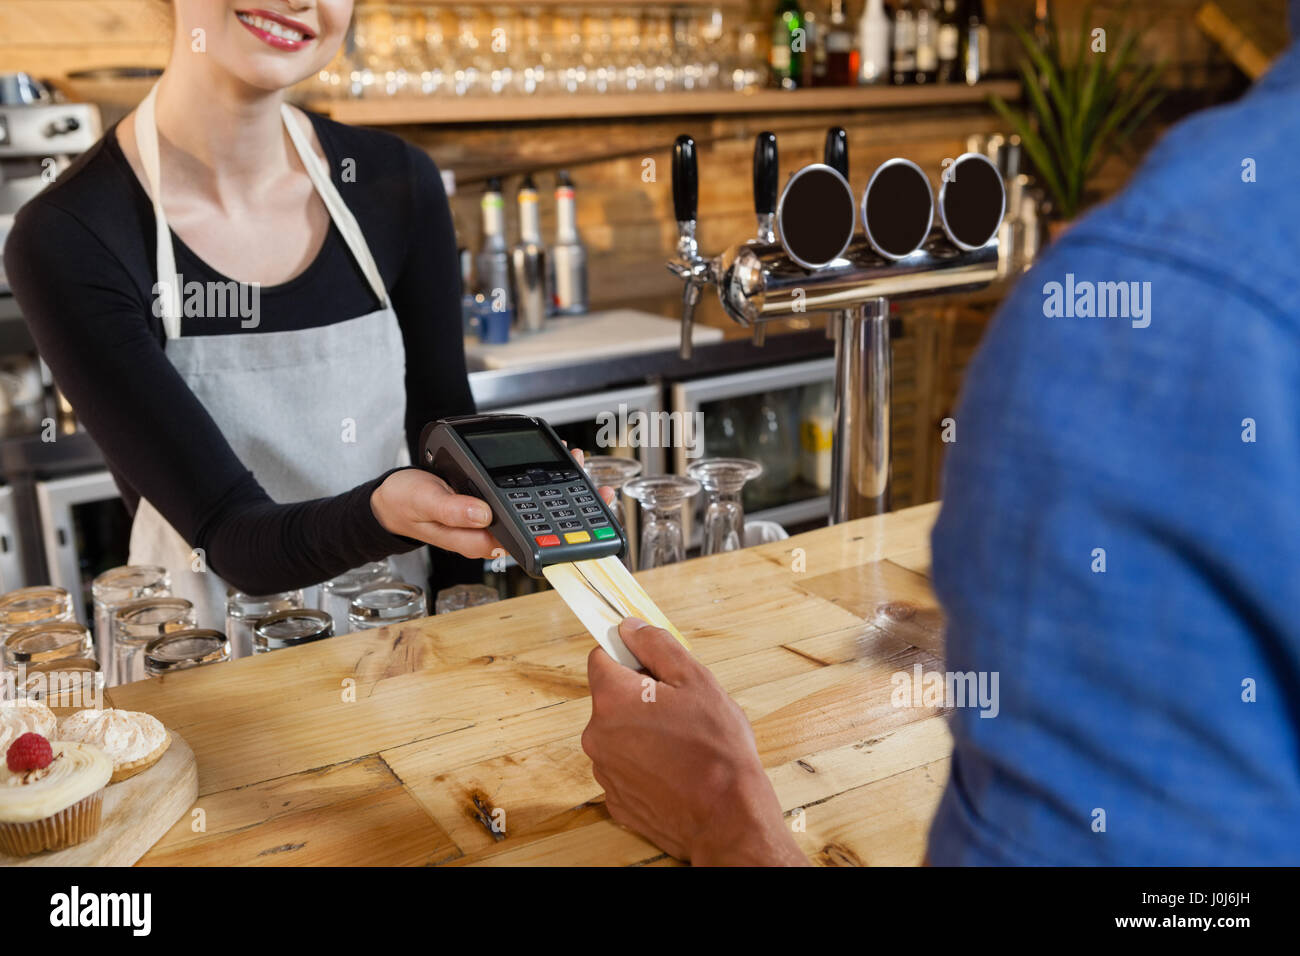 Man making payment on credit card reader machine at cafe shop - Stock Image